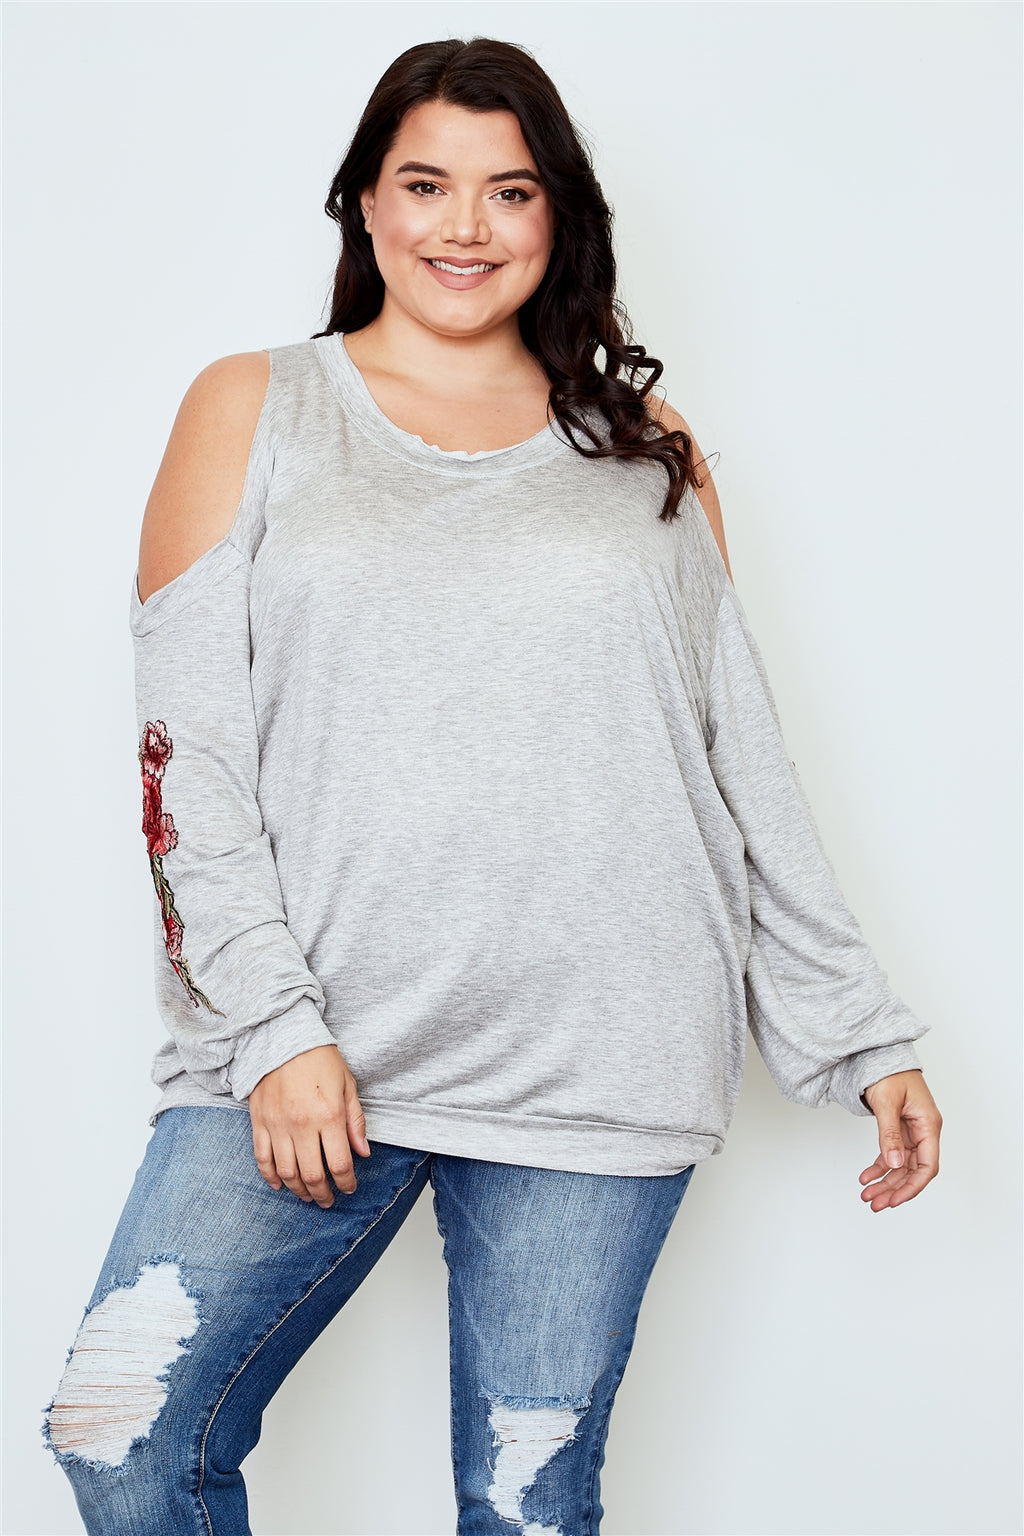 Ladies fashion plus size floral embroidered cold shoulder sweater